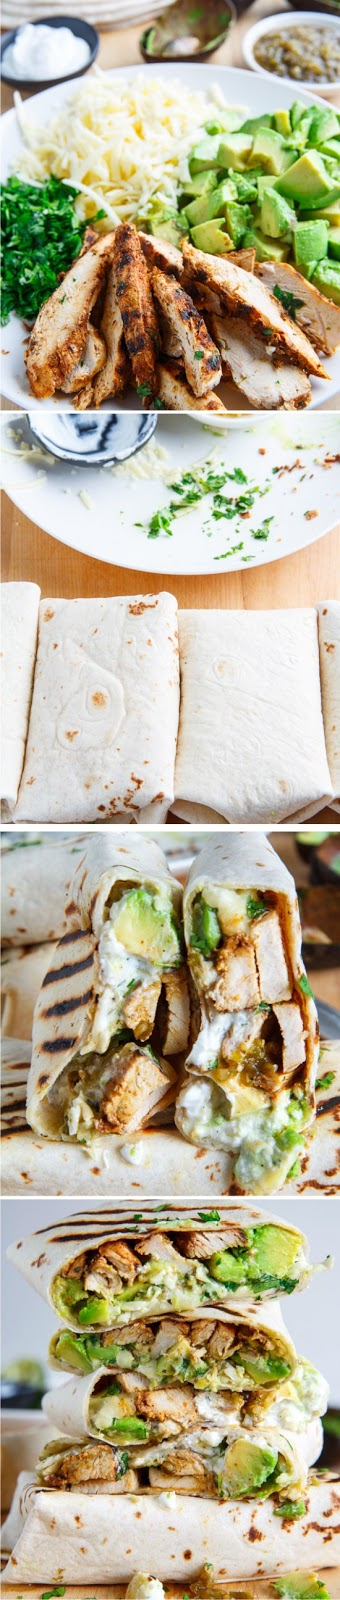 Chicken and Avocado Burritos Healthy Recipe